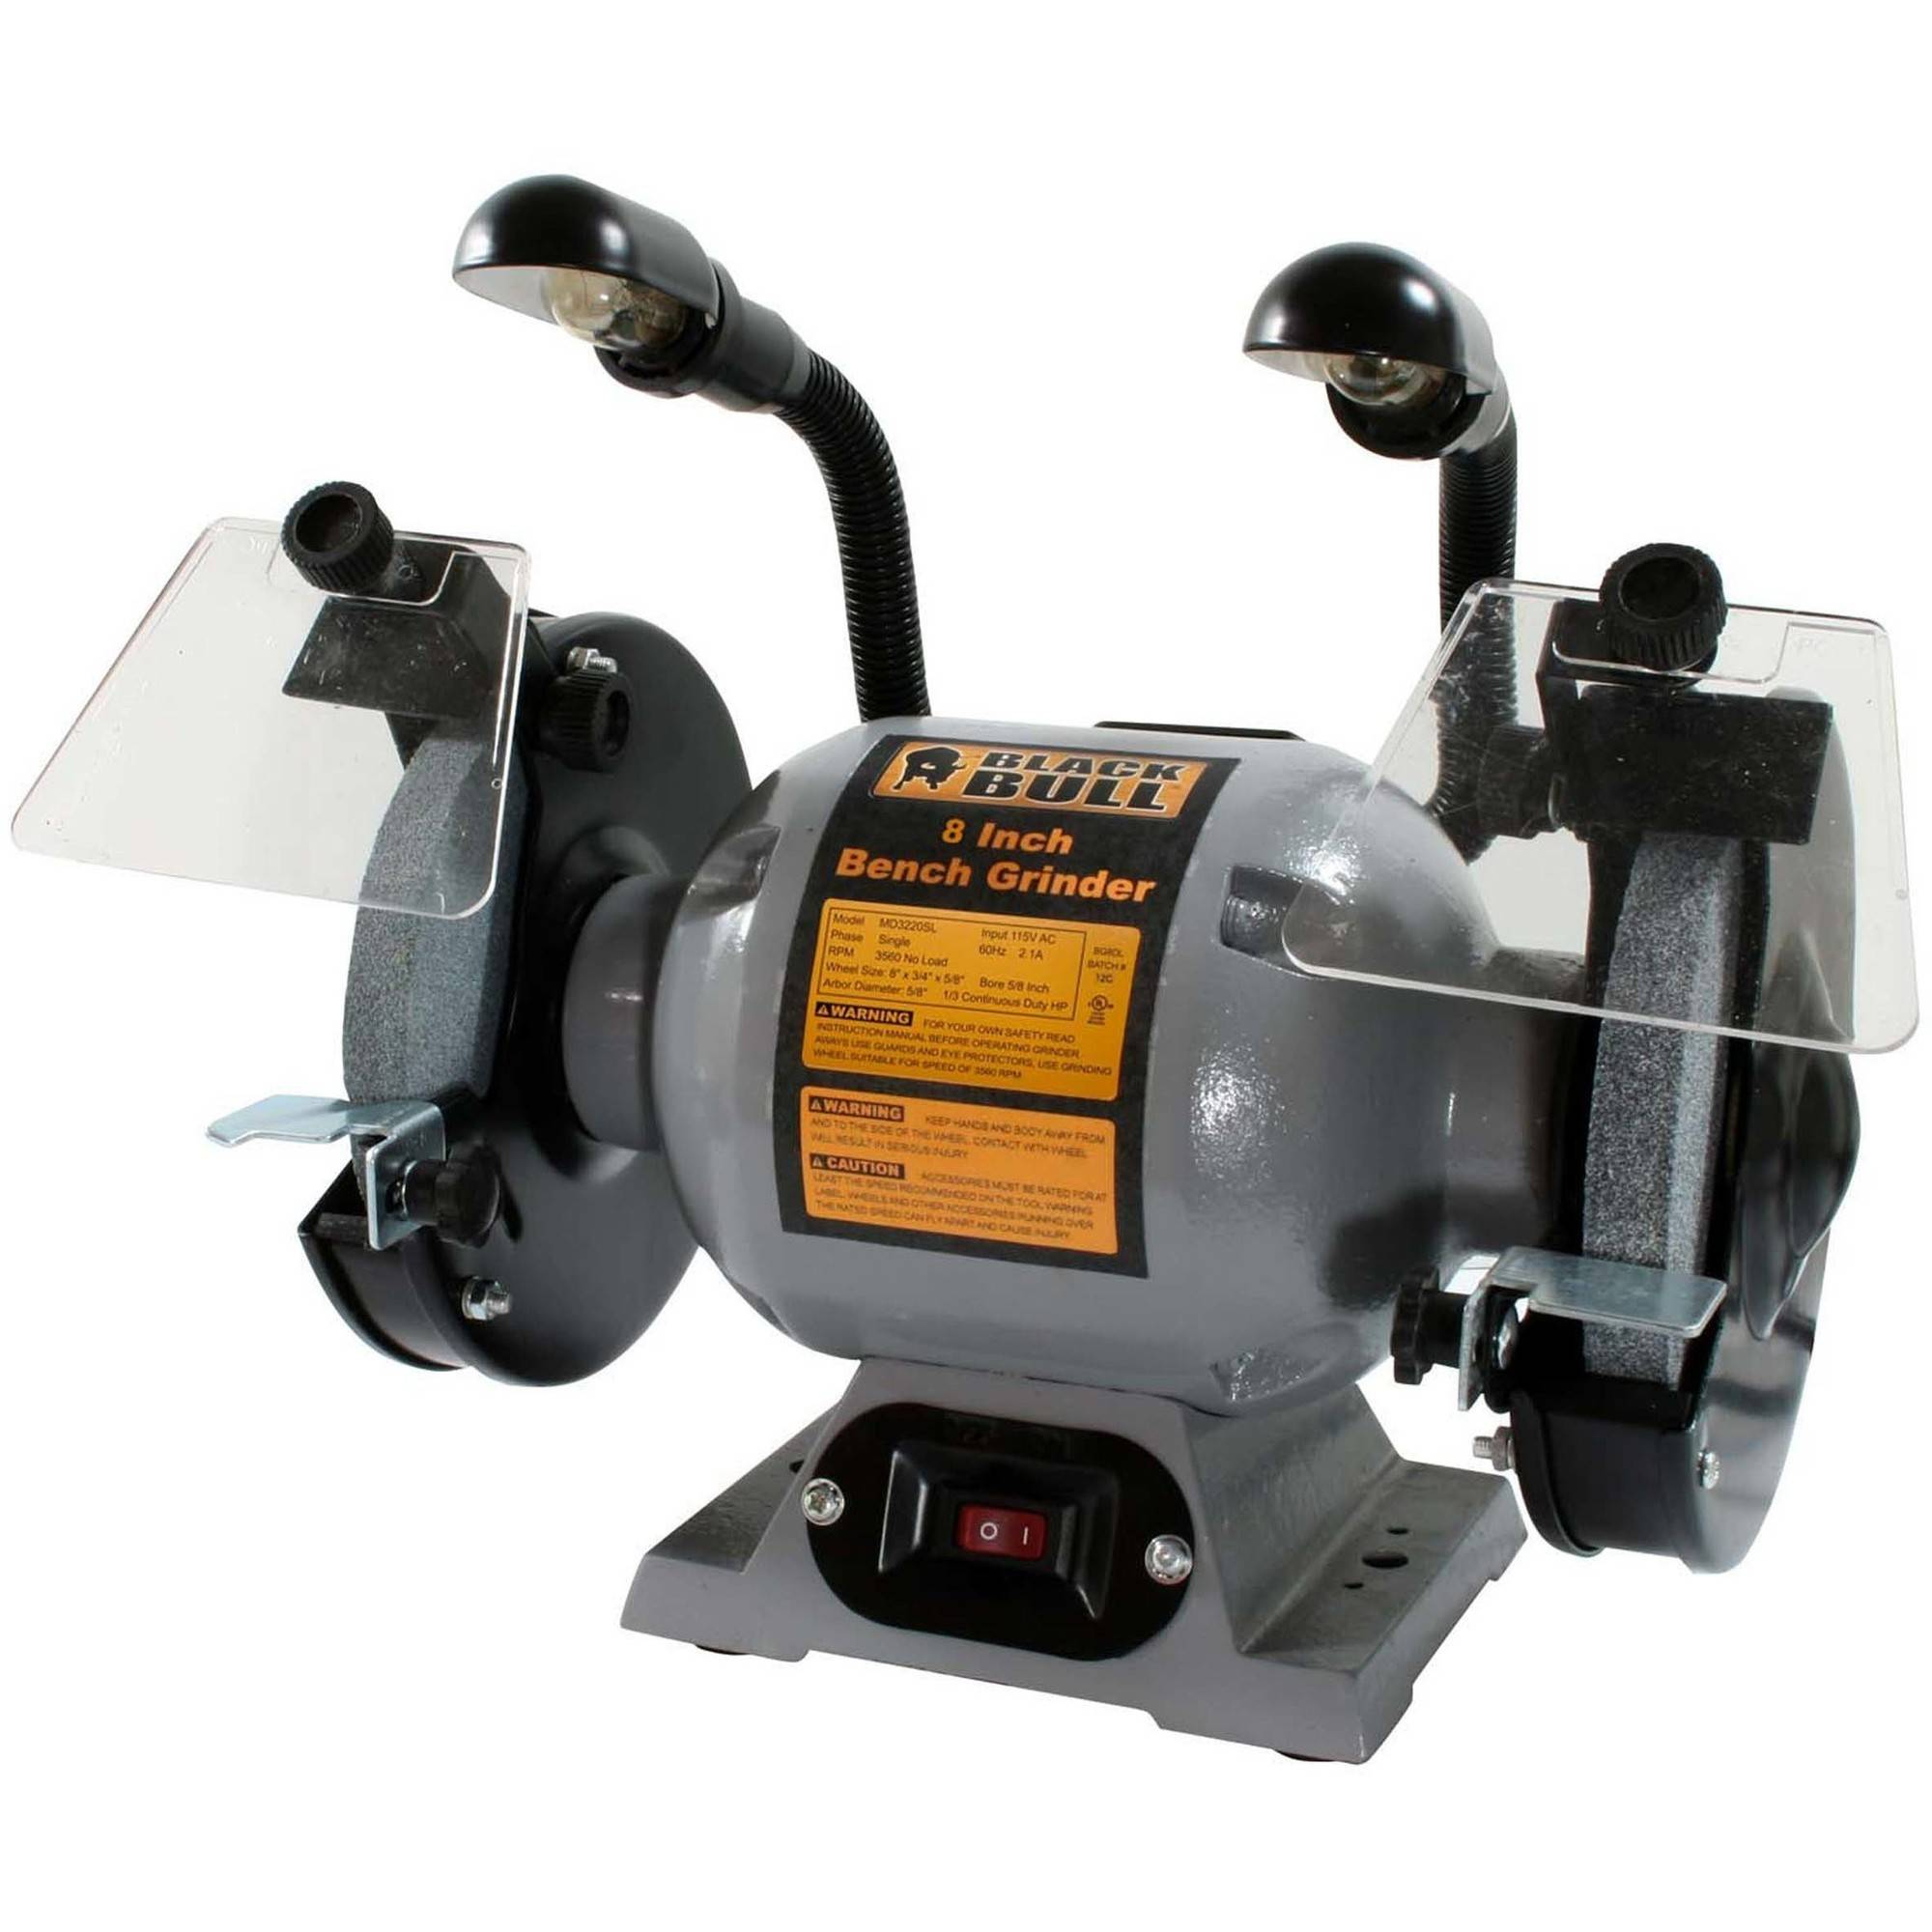 "Black Bull 8"" Bench Grinder with Lights"